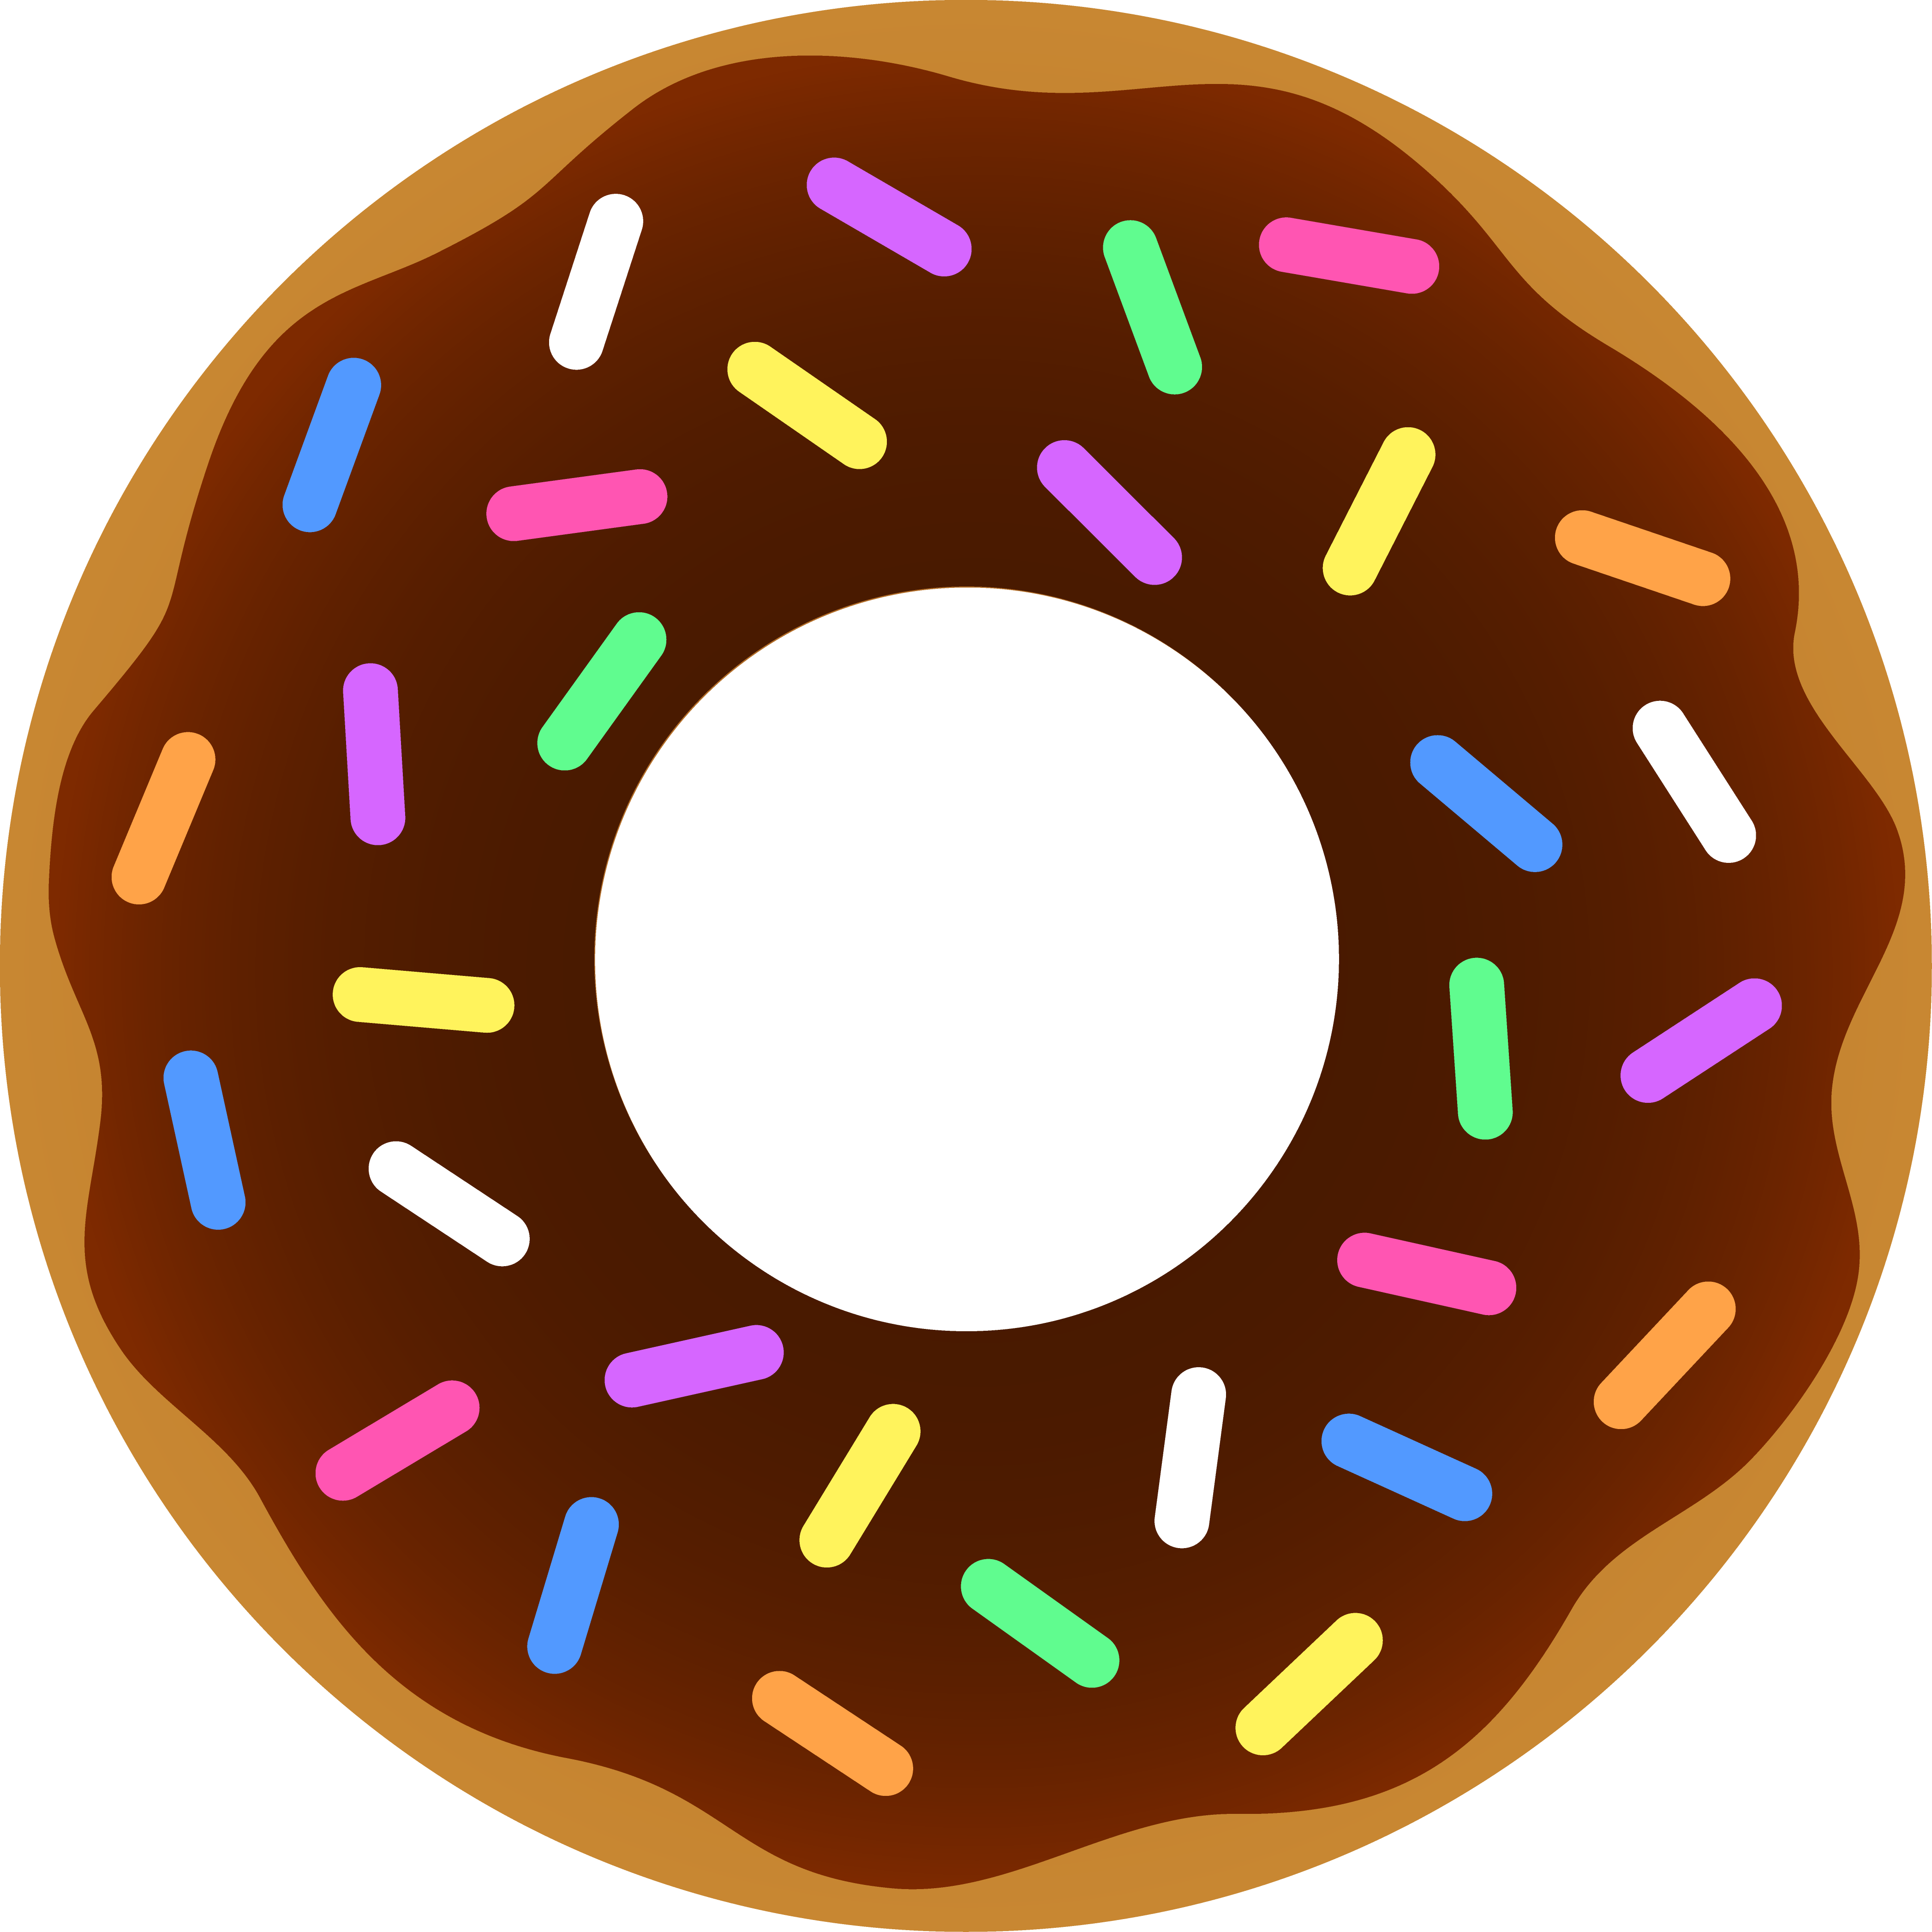 cartoon-donut-clip-art-425530.png